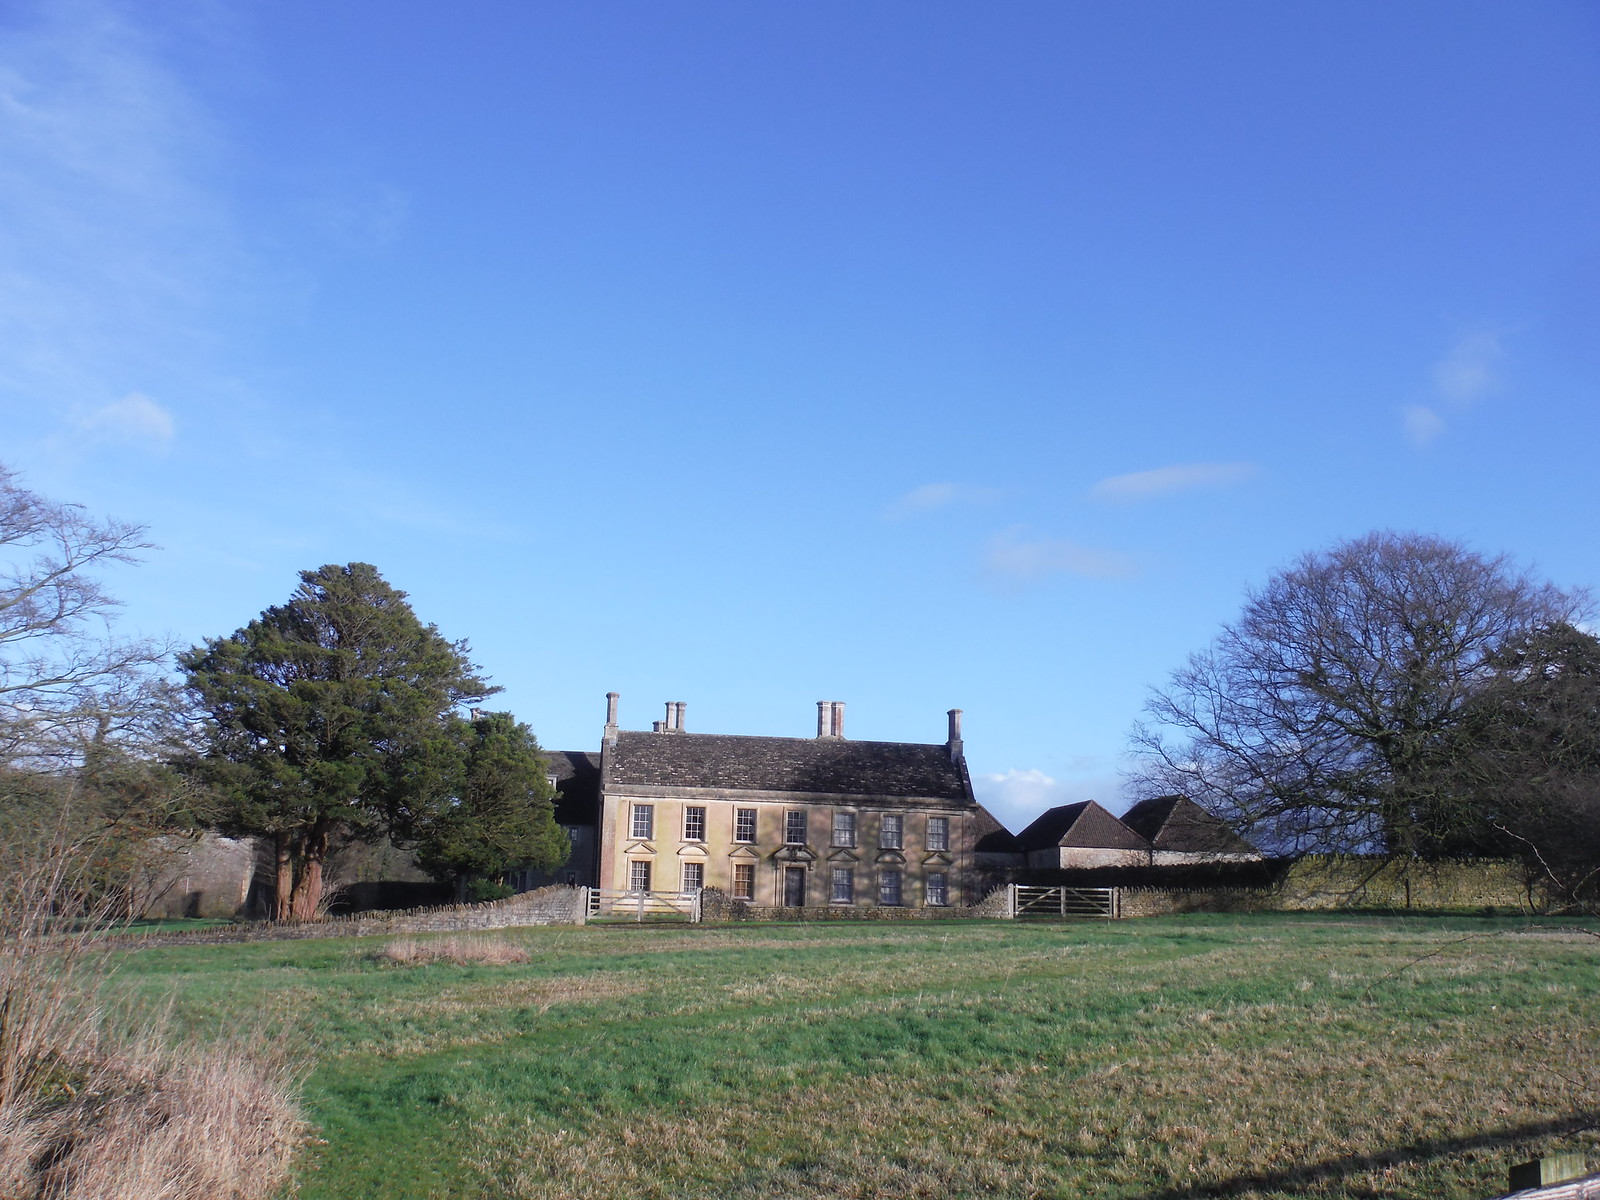 Godminster Farm SWC Walk 284 Bruton Circular (via Hauser & Wirth Somerset) or from Castle Cary